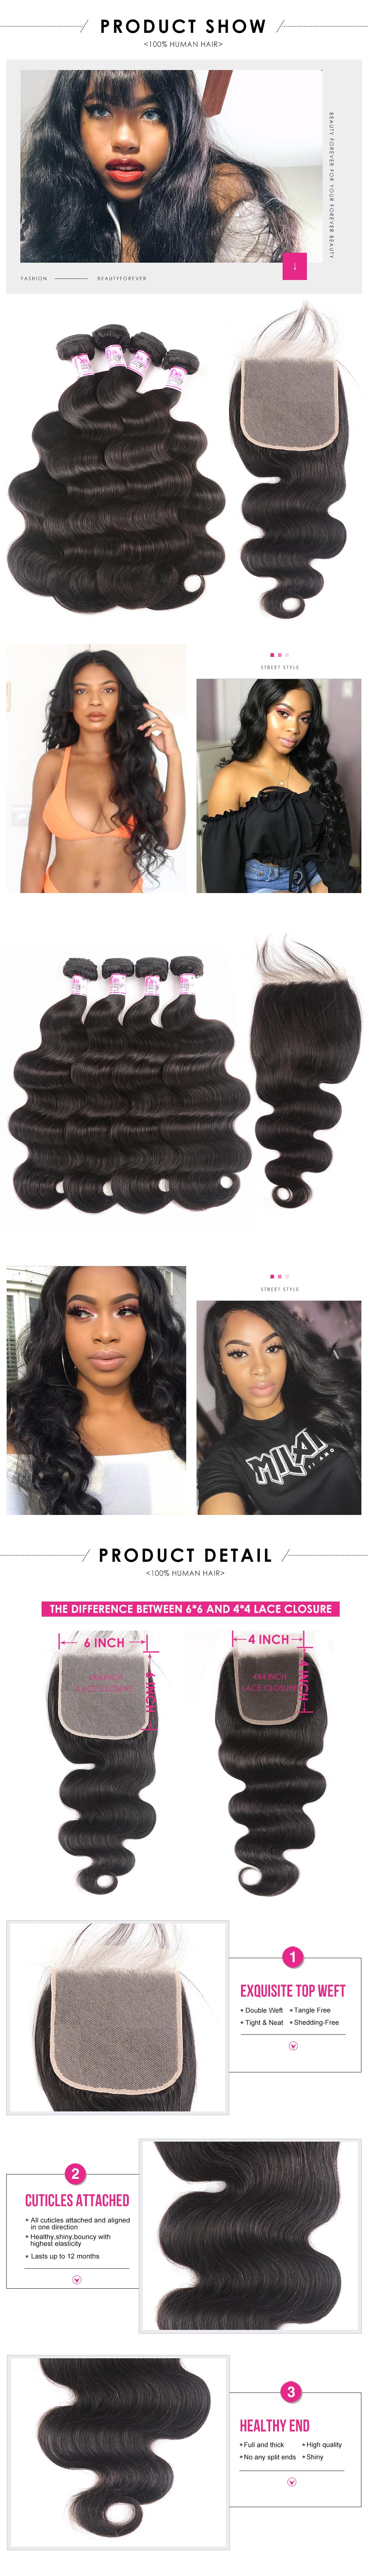 Body 4bundle with 6x6 Lace Closure